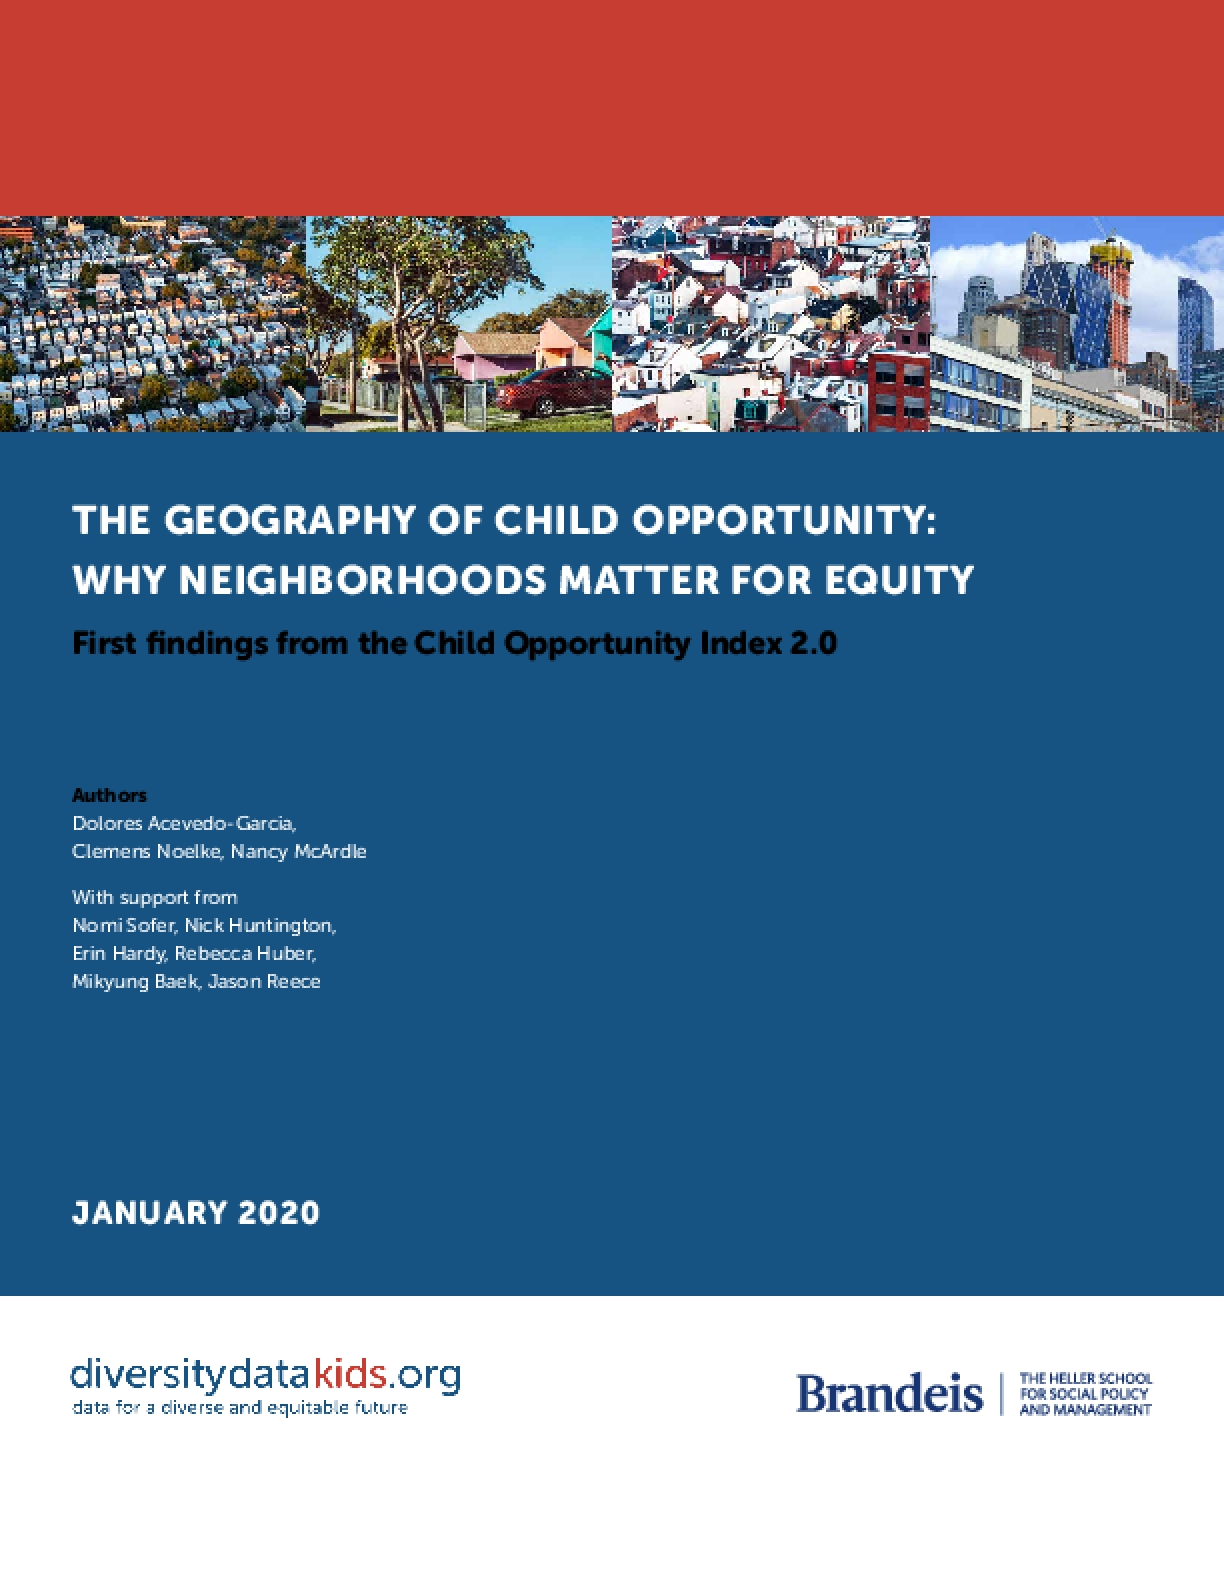 The Geography of Child Opportunity: Why Neighborhoods Matter For Equity